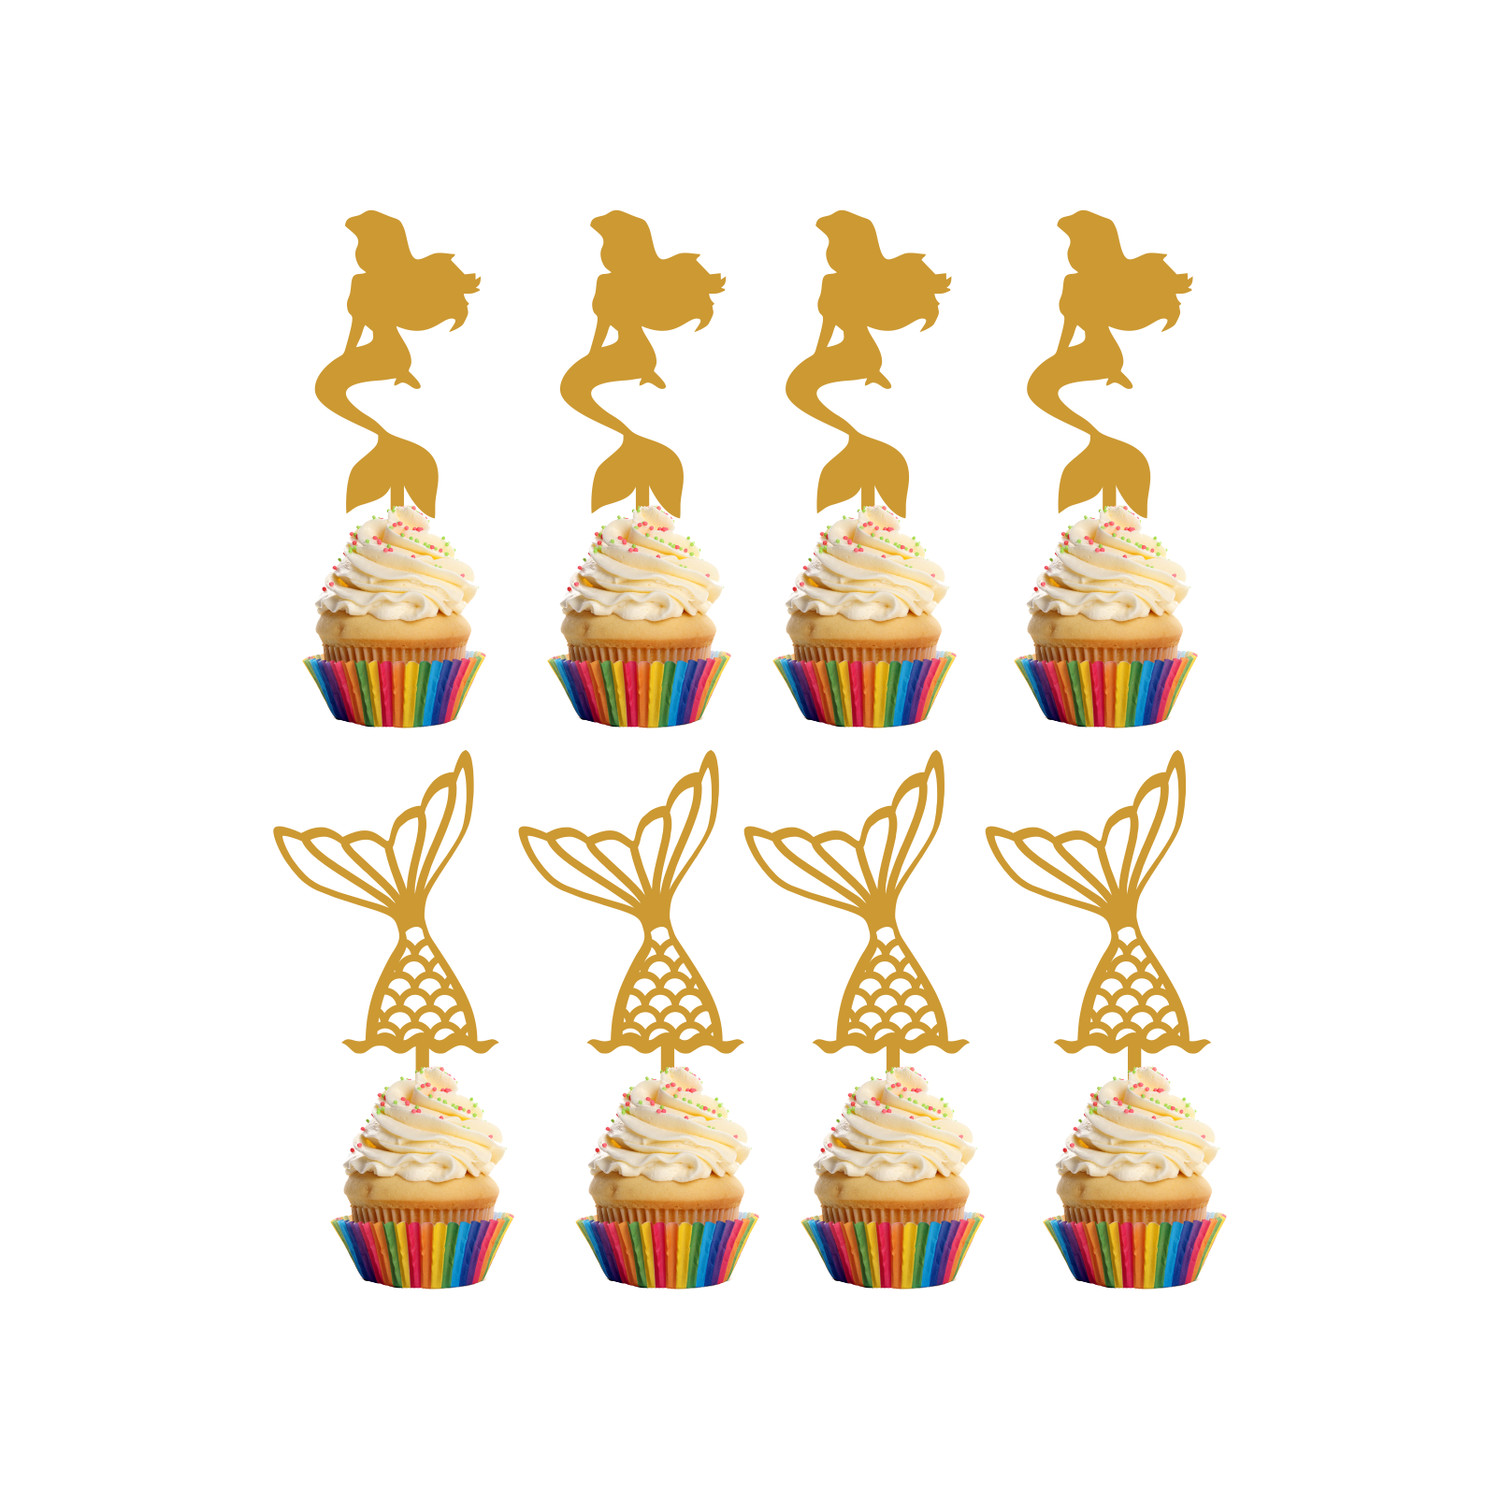 Children's Birthday Cup Cake Toppers Set Design 4 - 8 x Mermaid